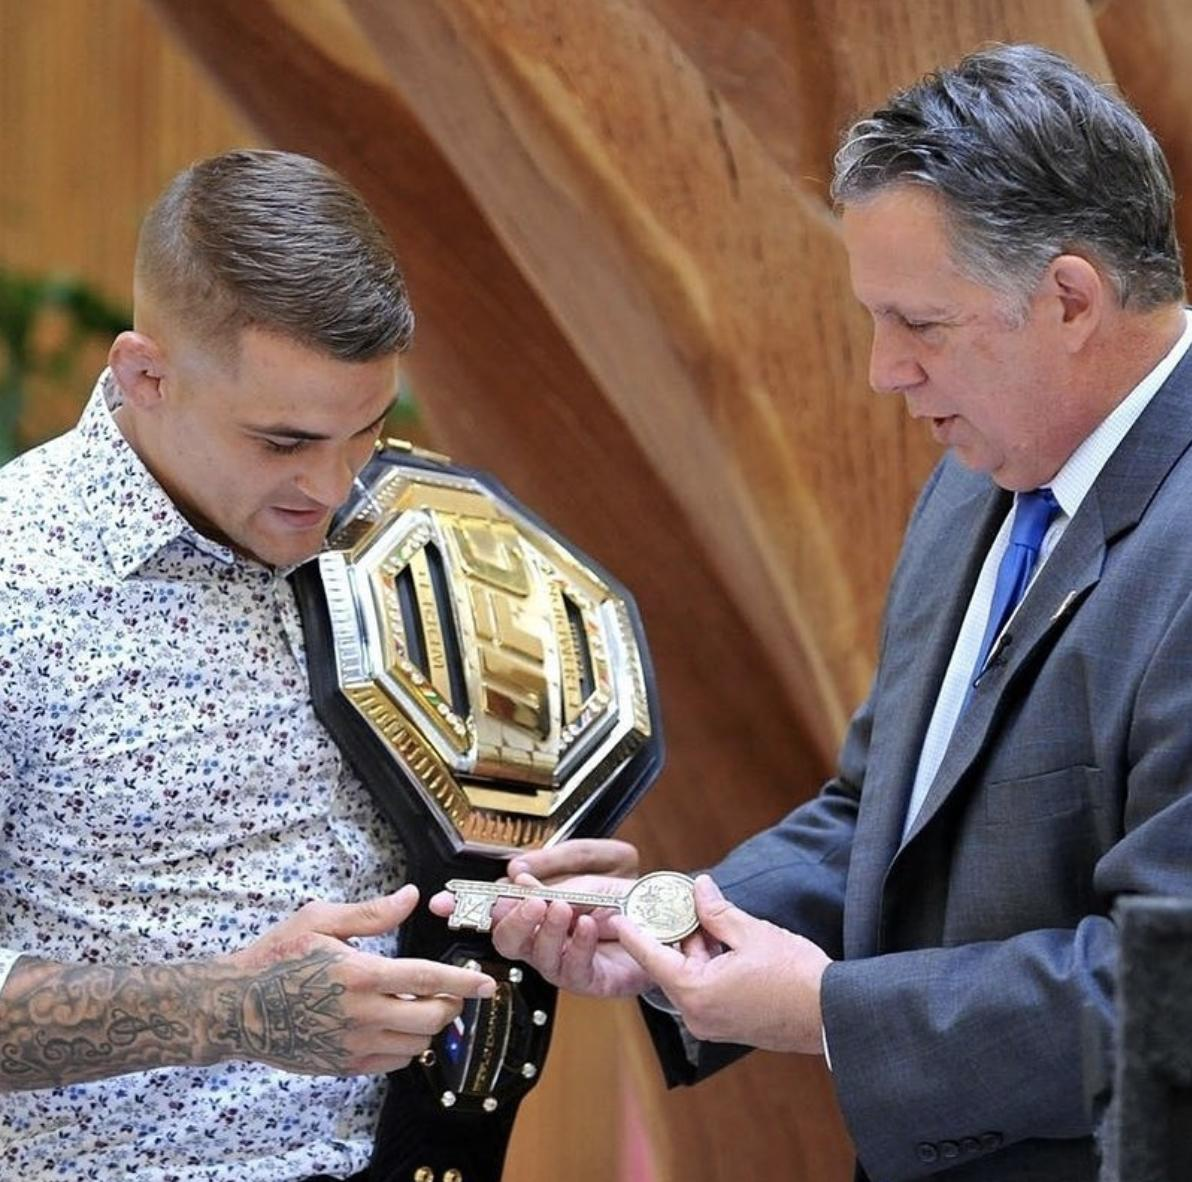 #UFC236 champions headed home this week:  🏆 @DustinPoirier received a key to Lafayette, Louisiana!  🏆 @Stylebender returned to his childhood school in Nigeria!